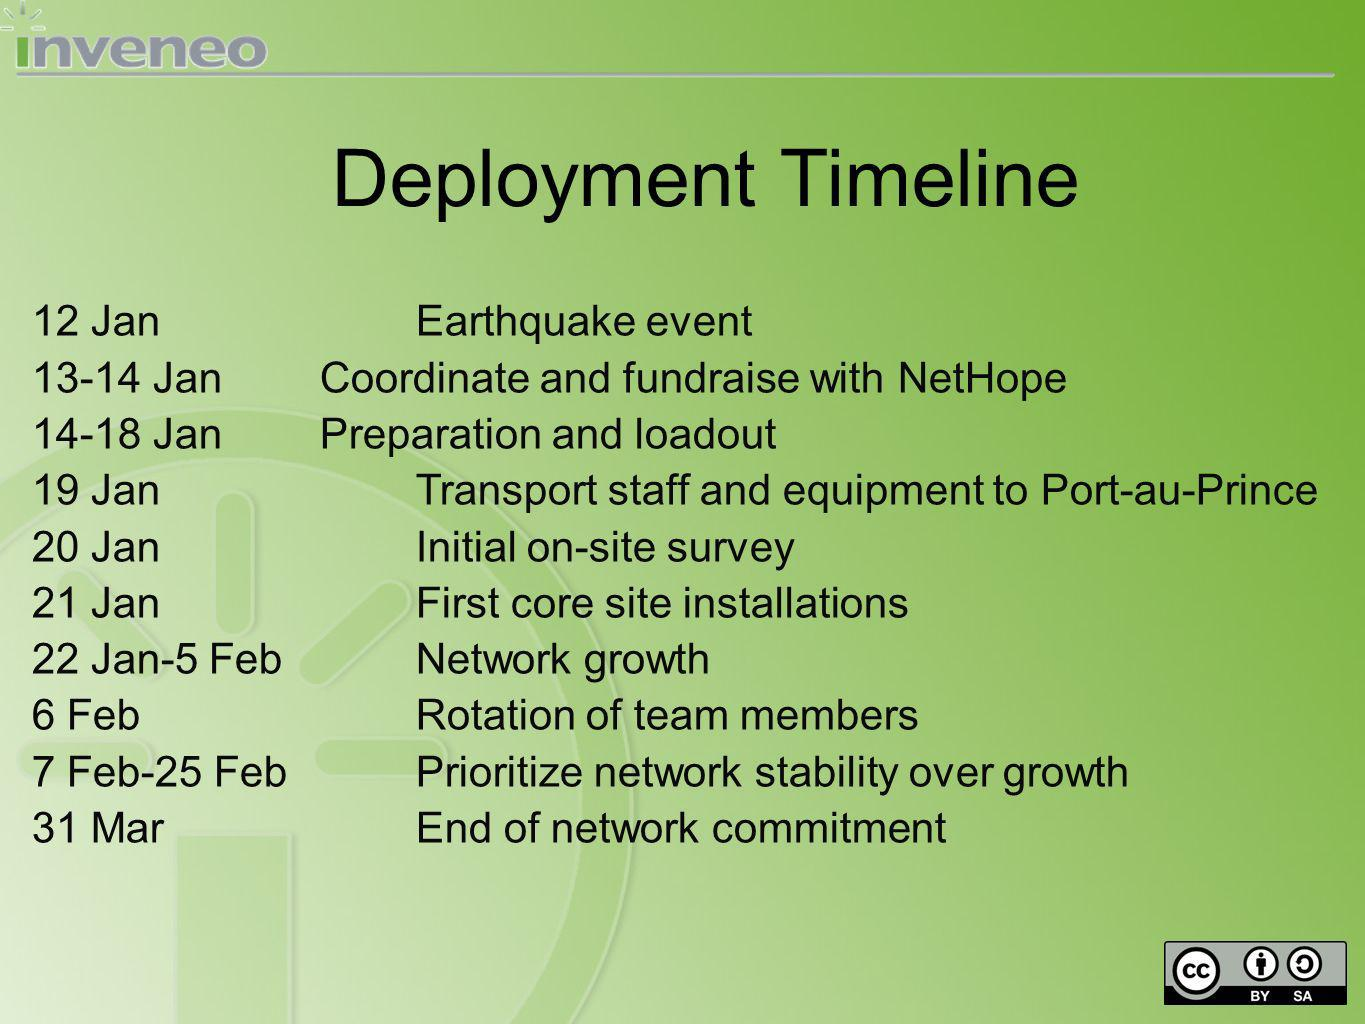 12 JanEarthquake event 13-14 JanCoordinate and fundraise with NetHope 14-18 JanPreparation and loadout 19 JanTransport staff and equipment to Port-au-Prince 20 JanInitial on-site survey 21 JanFirst core site installations 22 Jan-5 FebNetwork growth 6 FebRotation of team members 7 Feb-25 FebPrioritize network stability over growth 31 MarEnd of network commitment Deployment Timeline